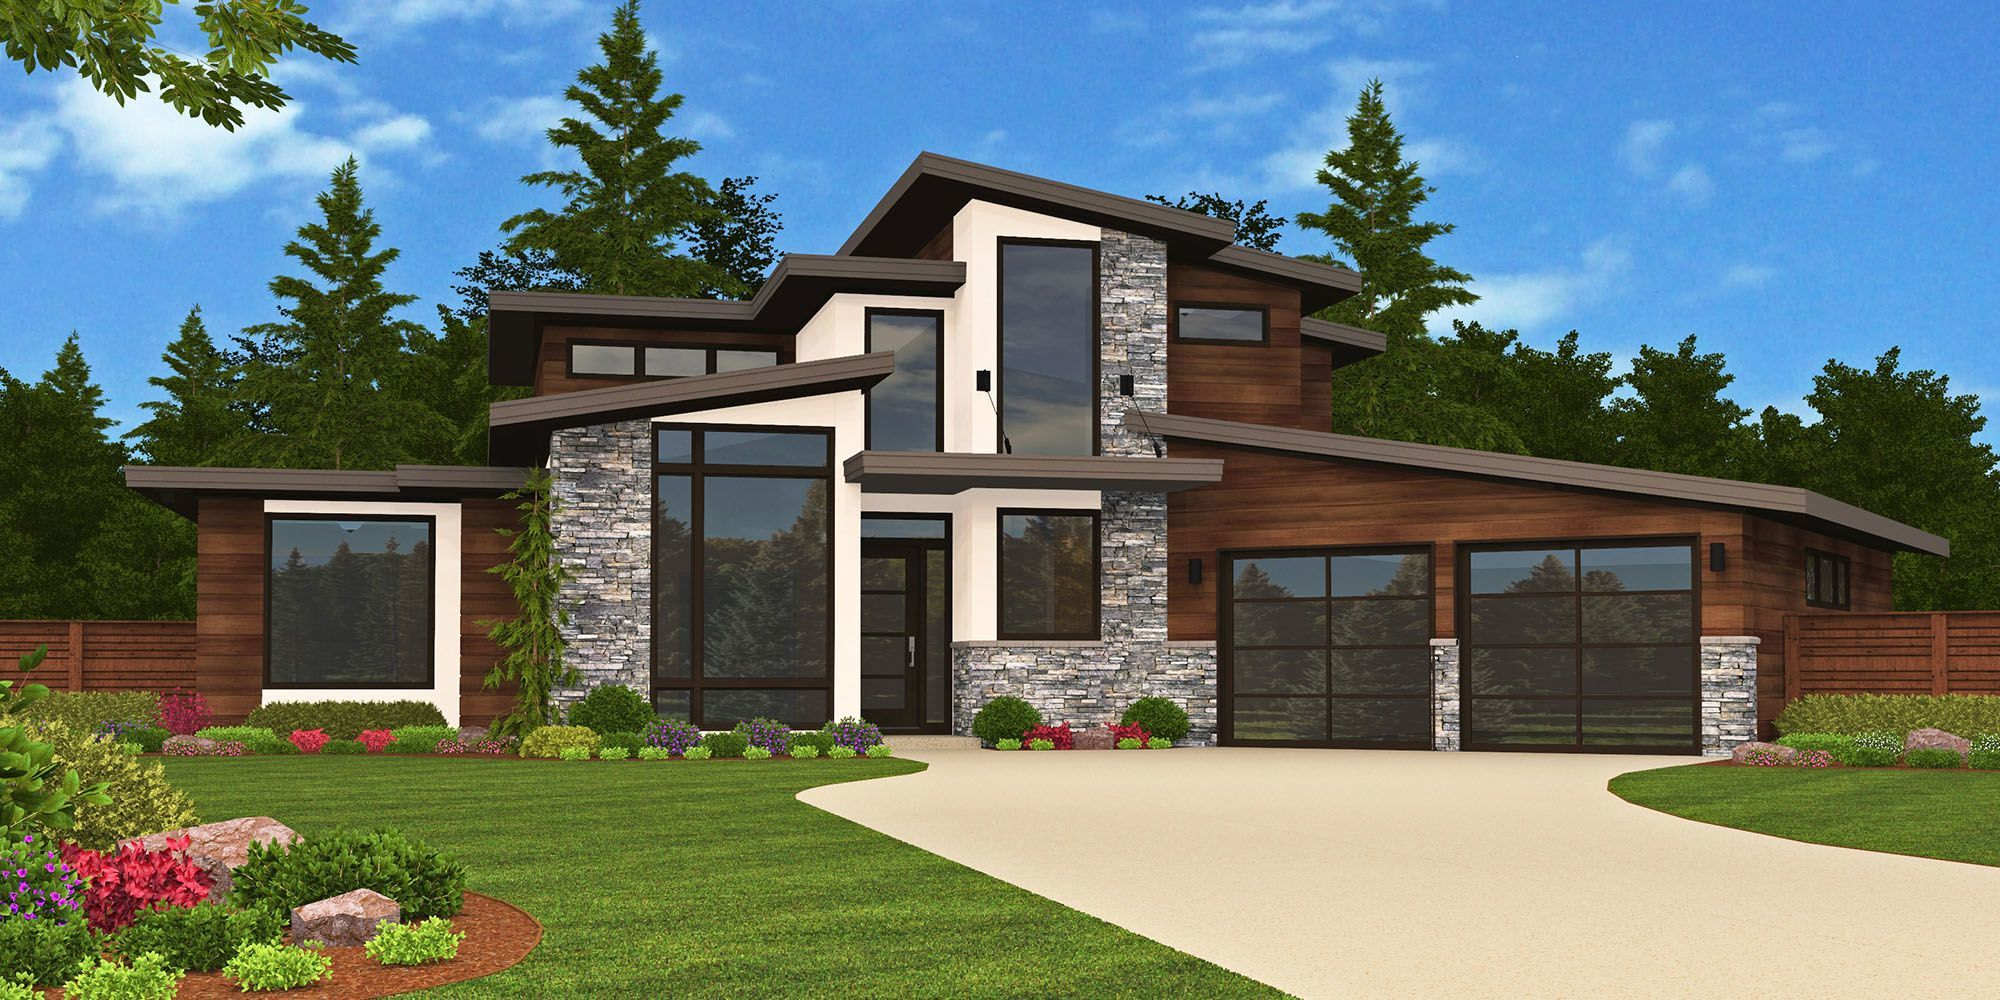 Sting x 16a house plan modern house plans for Custom modern home plans